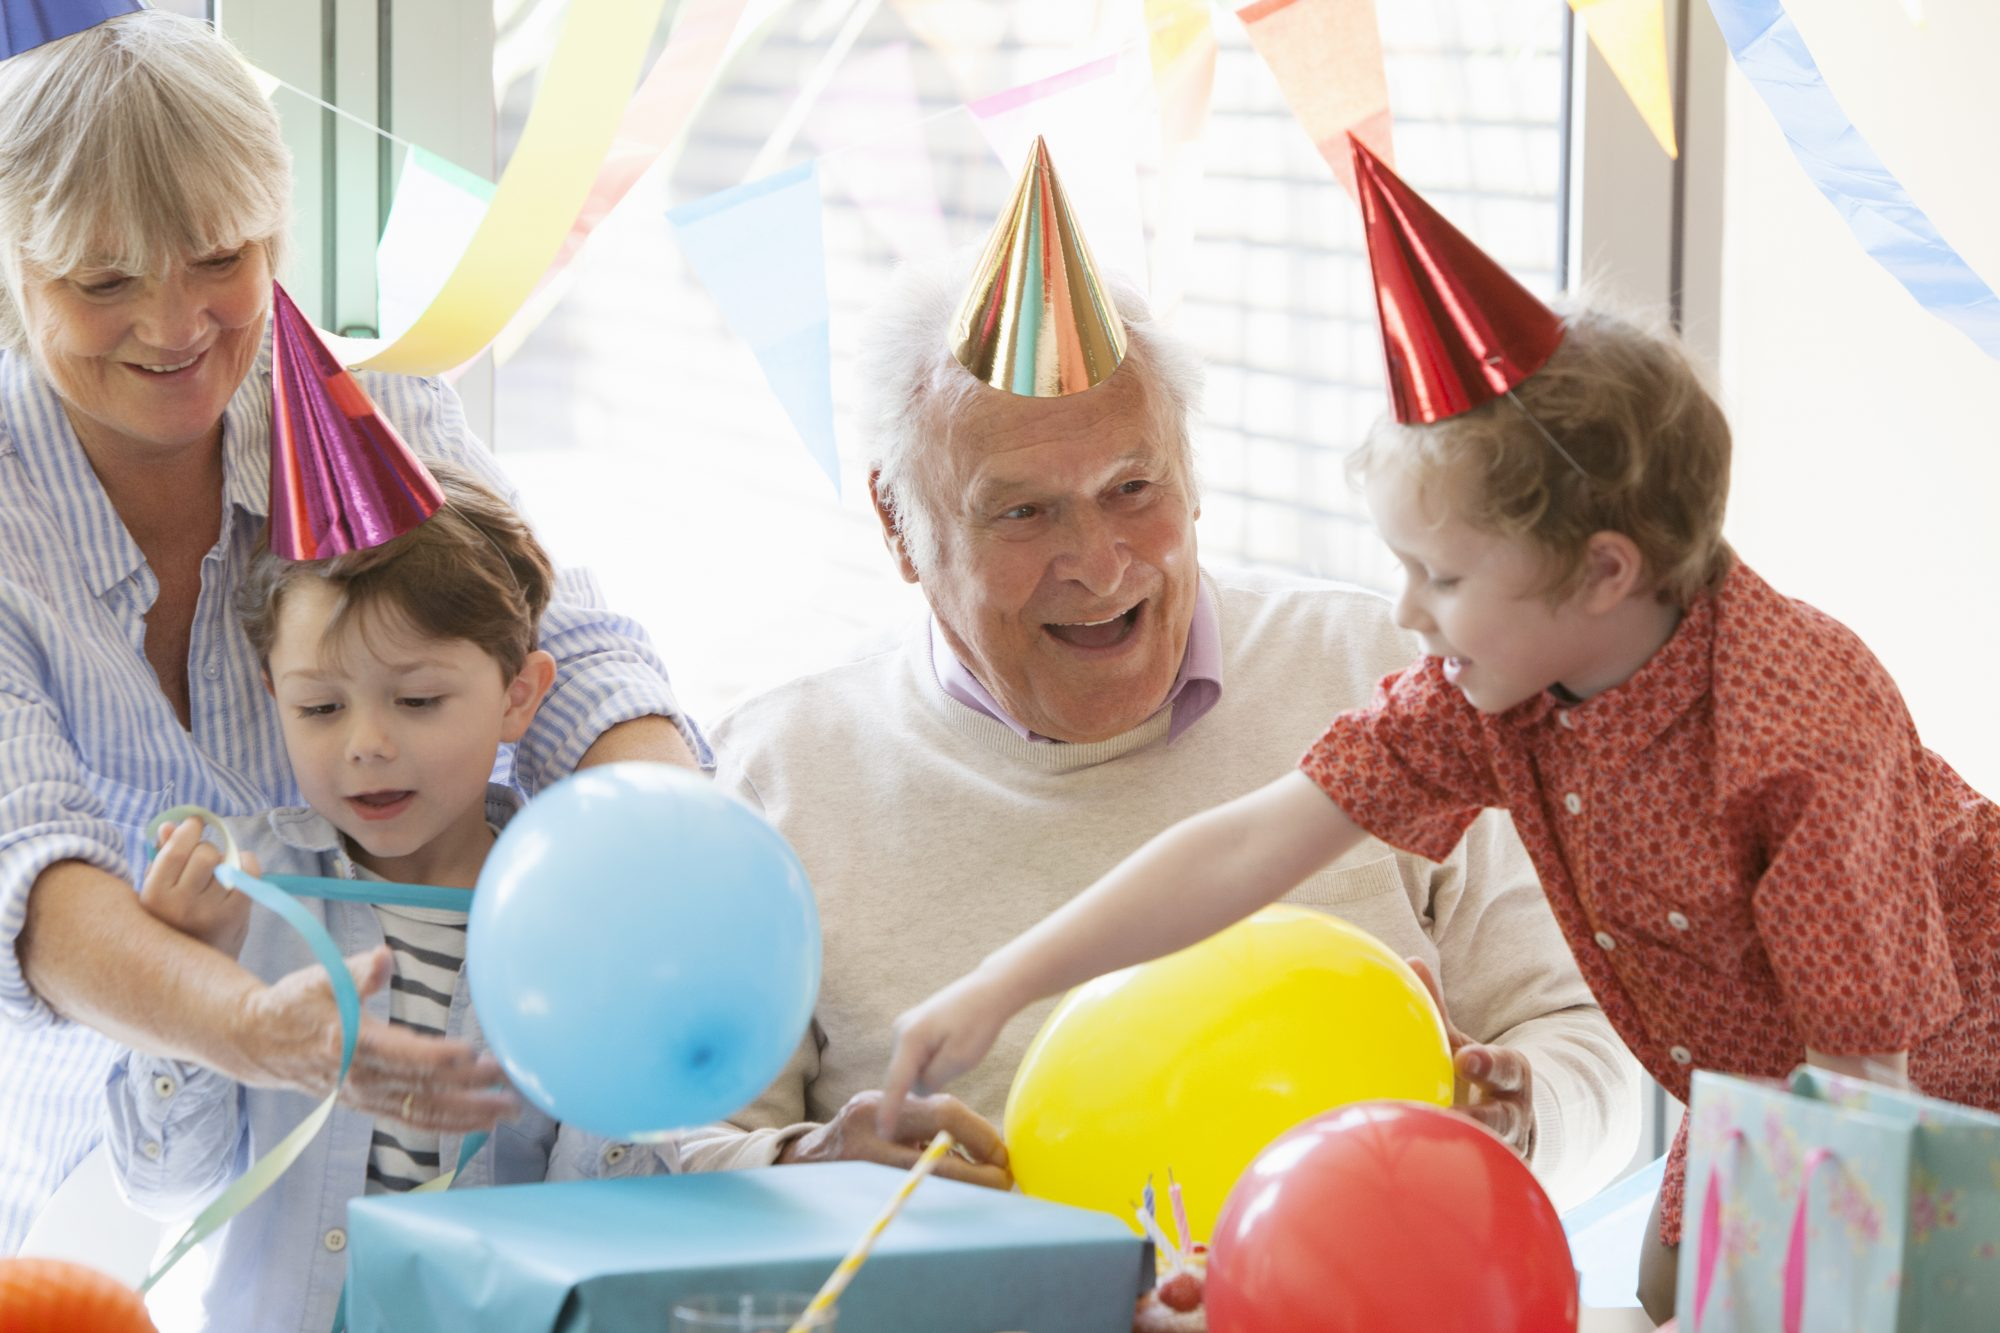 Grandfather with Children on Birthday